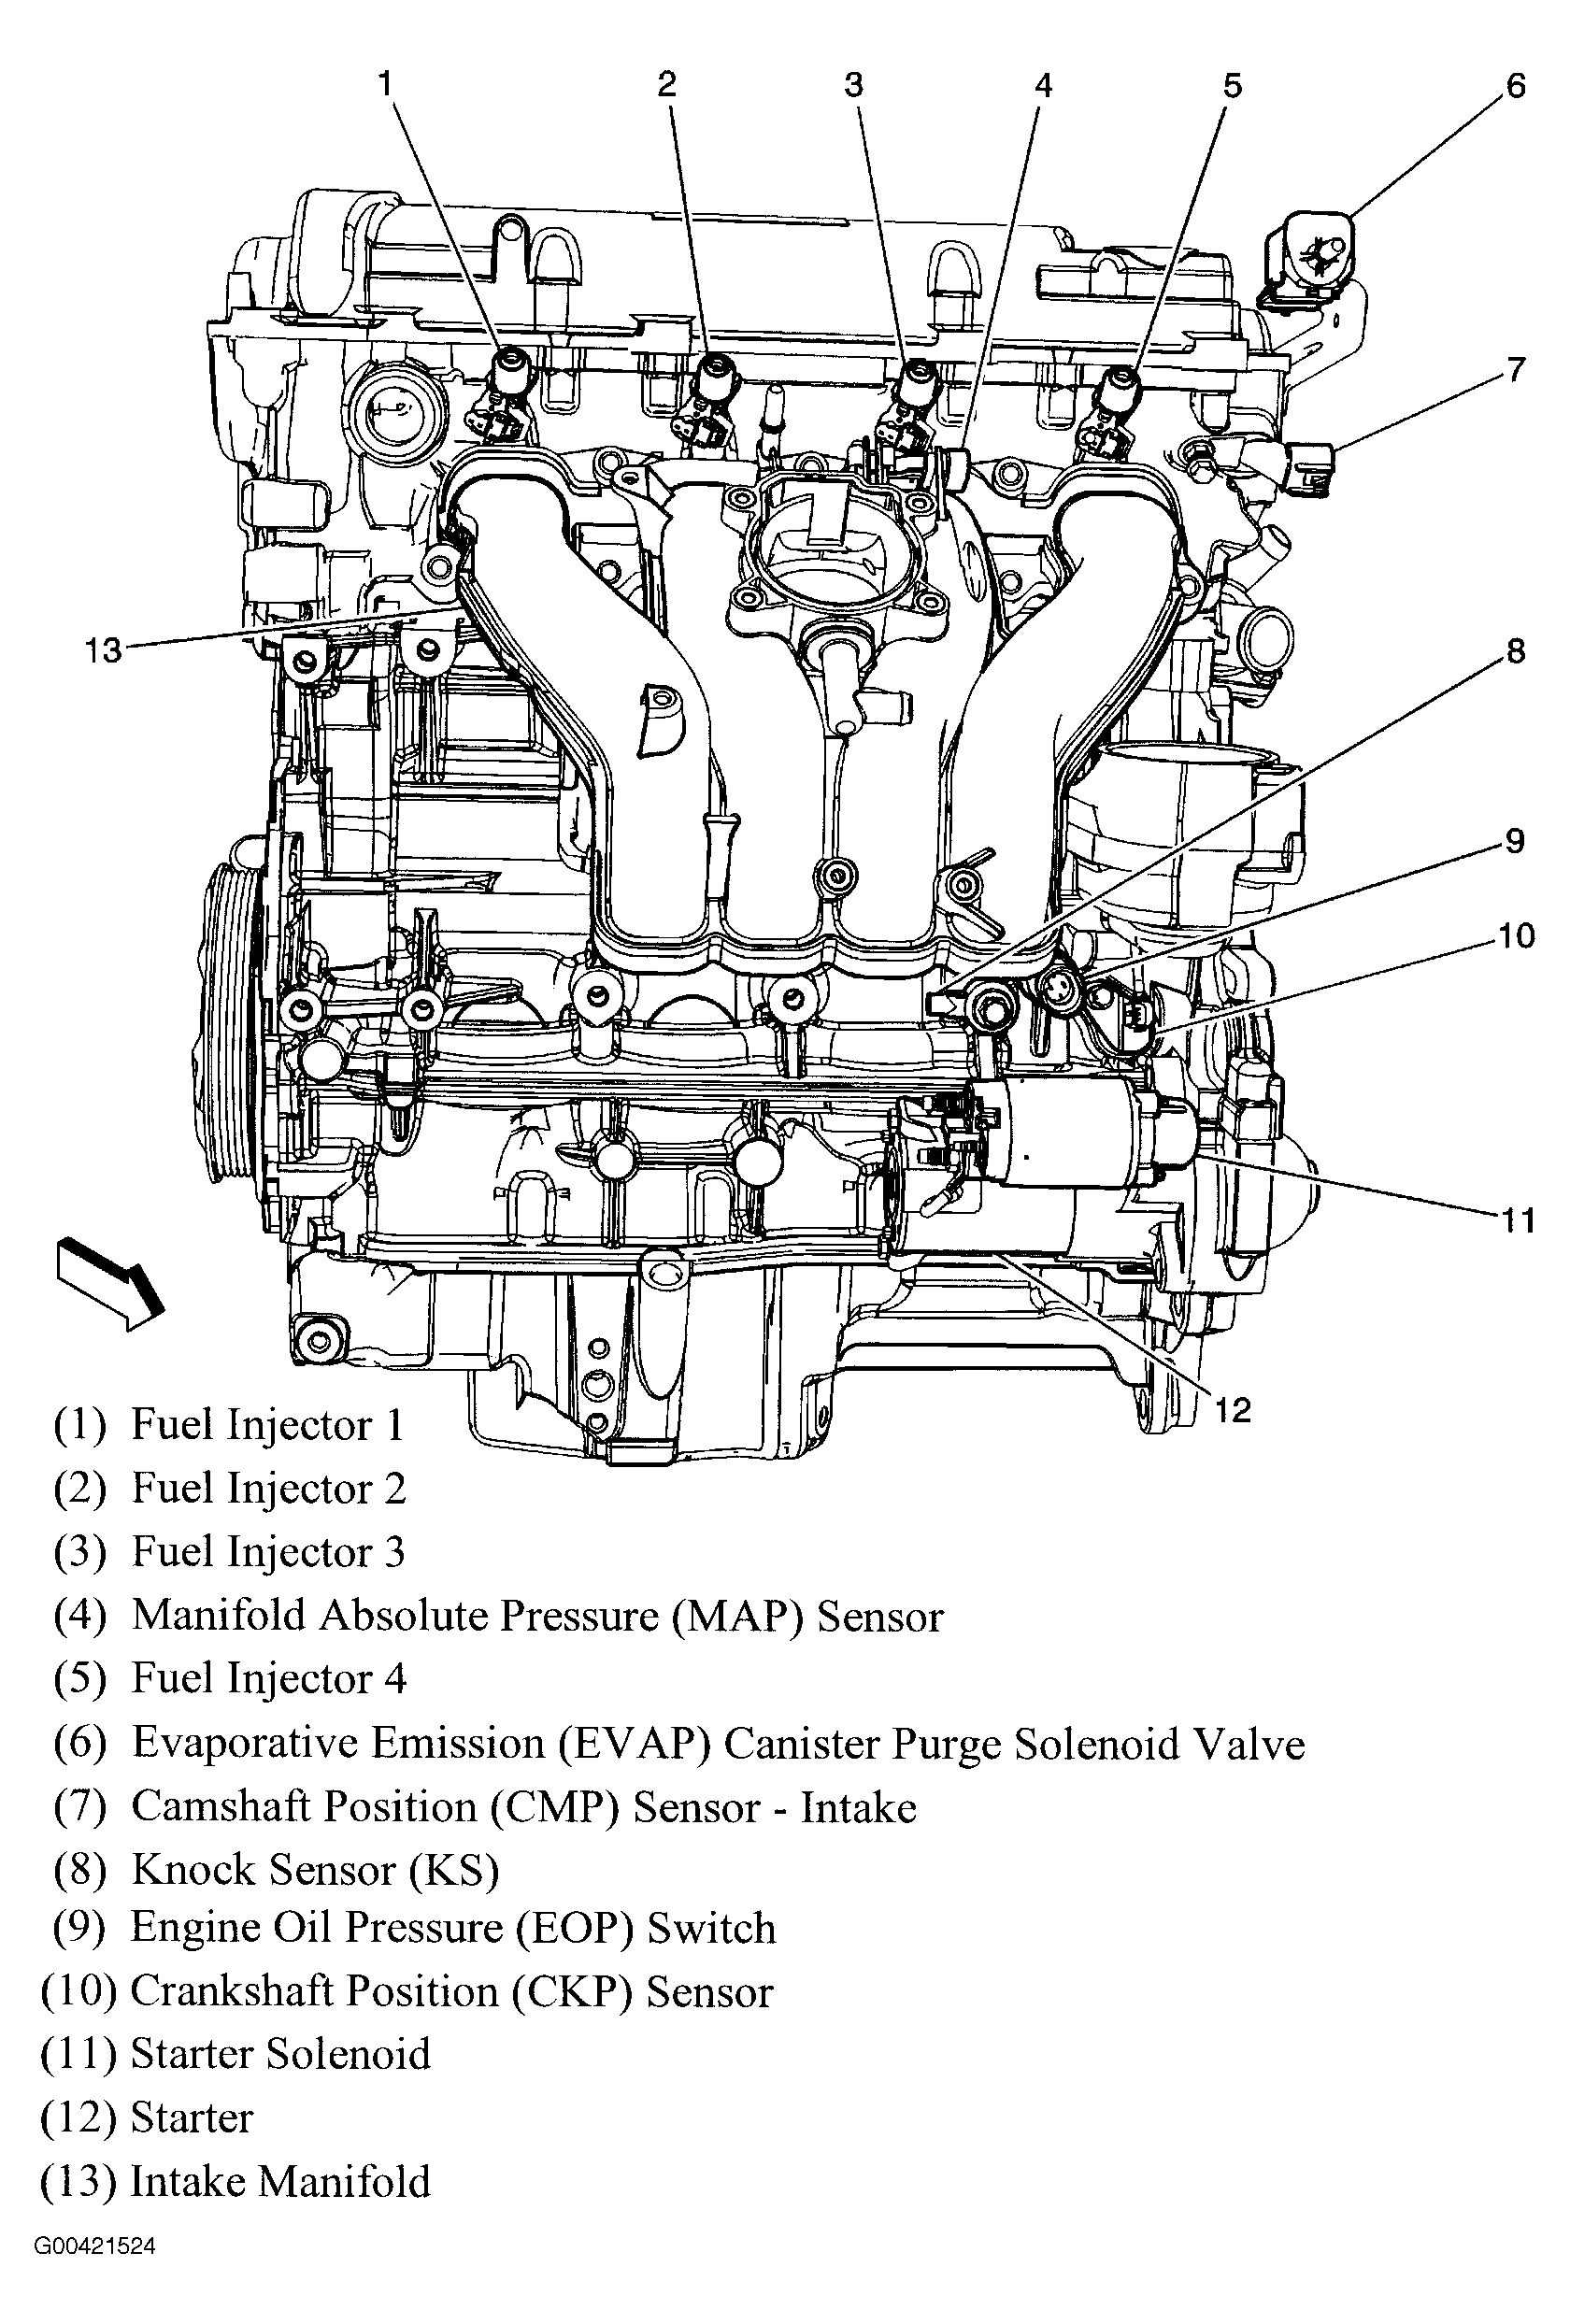 Engine Breakdown Diagram Mazda 2 2l Engine Diagram Wiring Diagram Expert Of Engine Breakdown Diagram